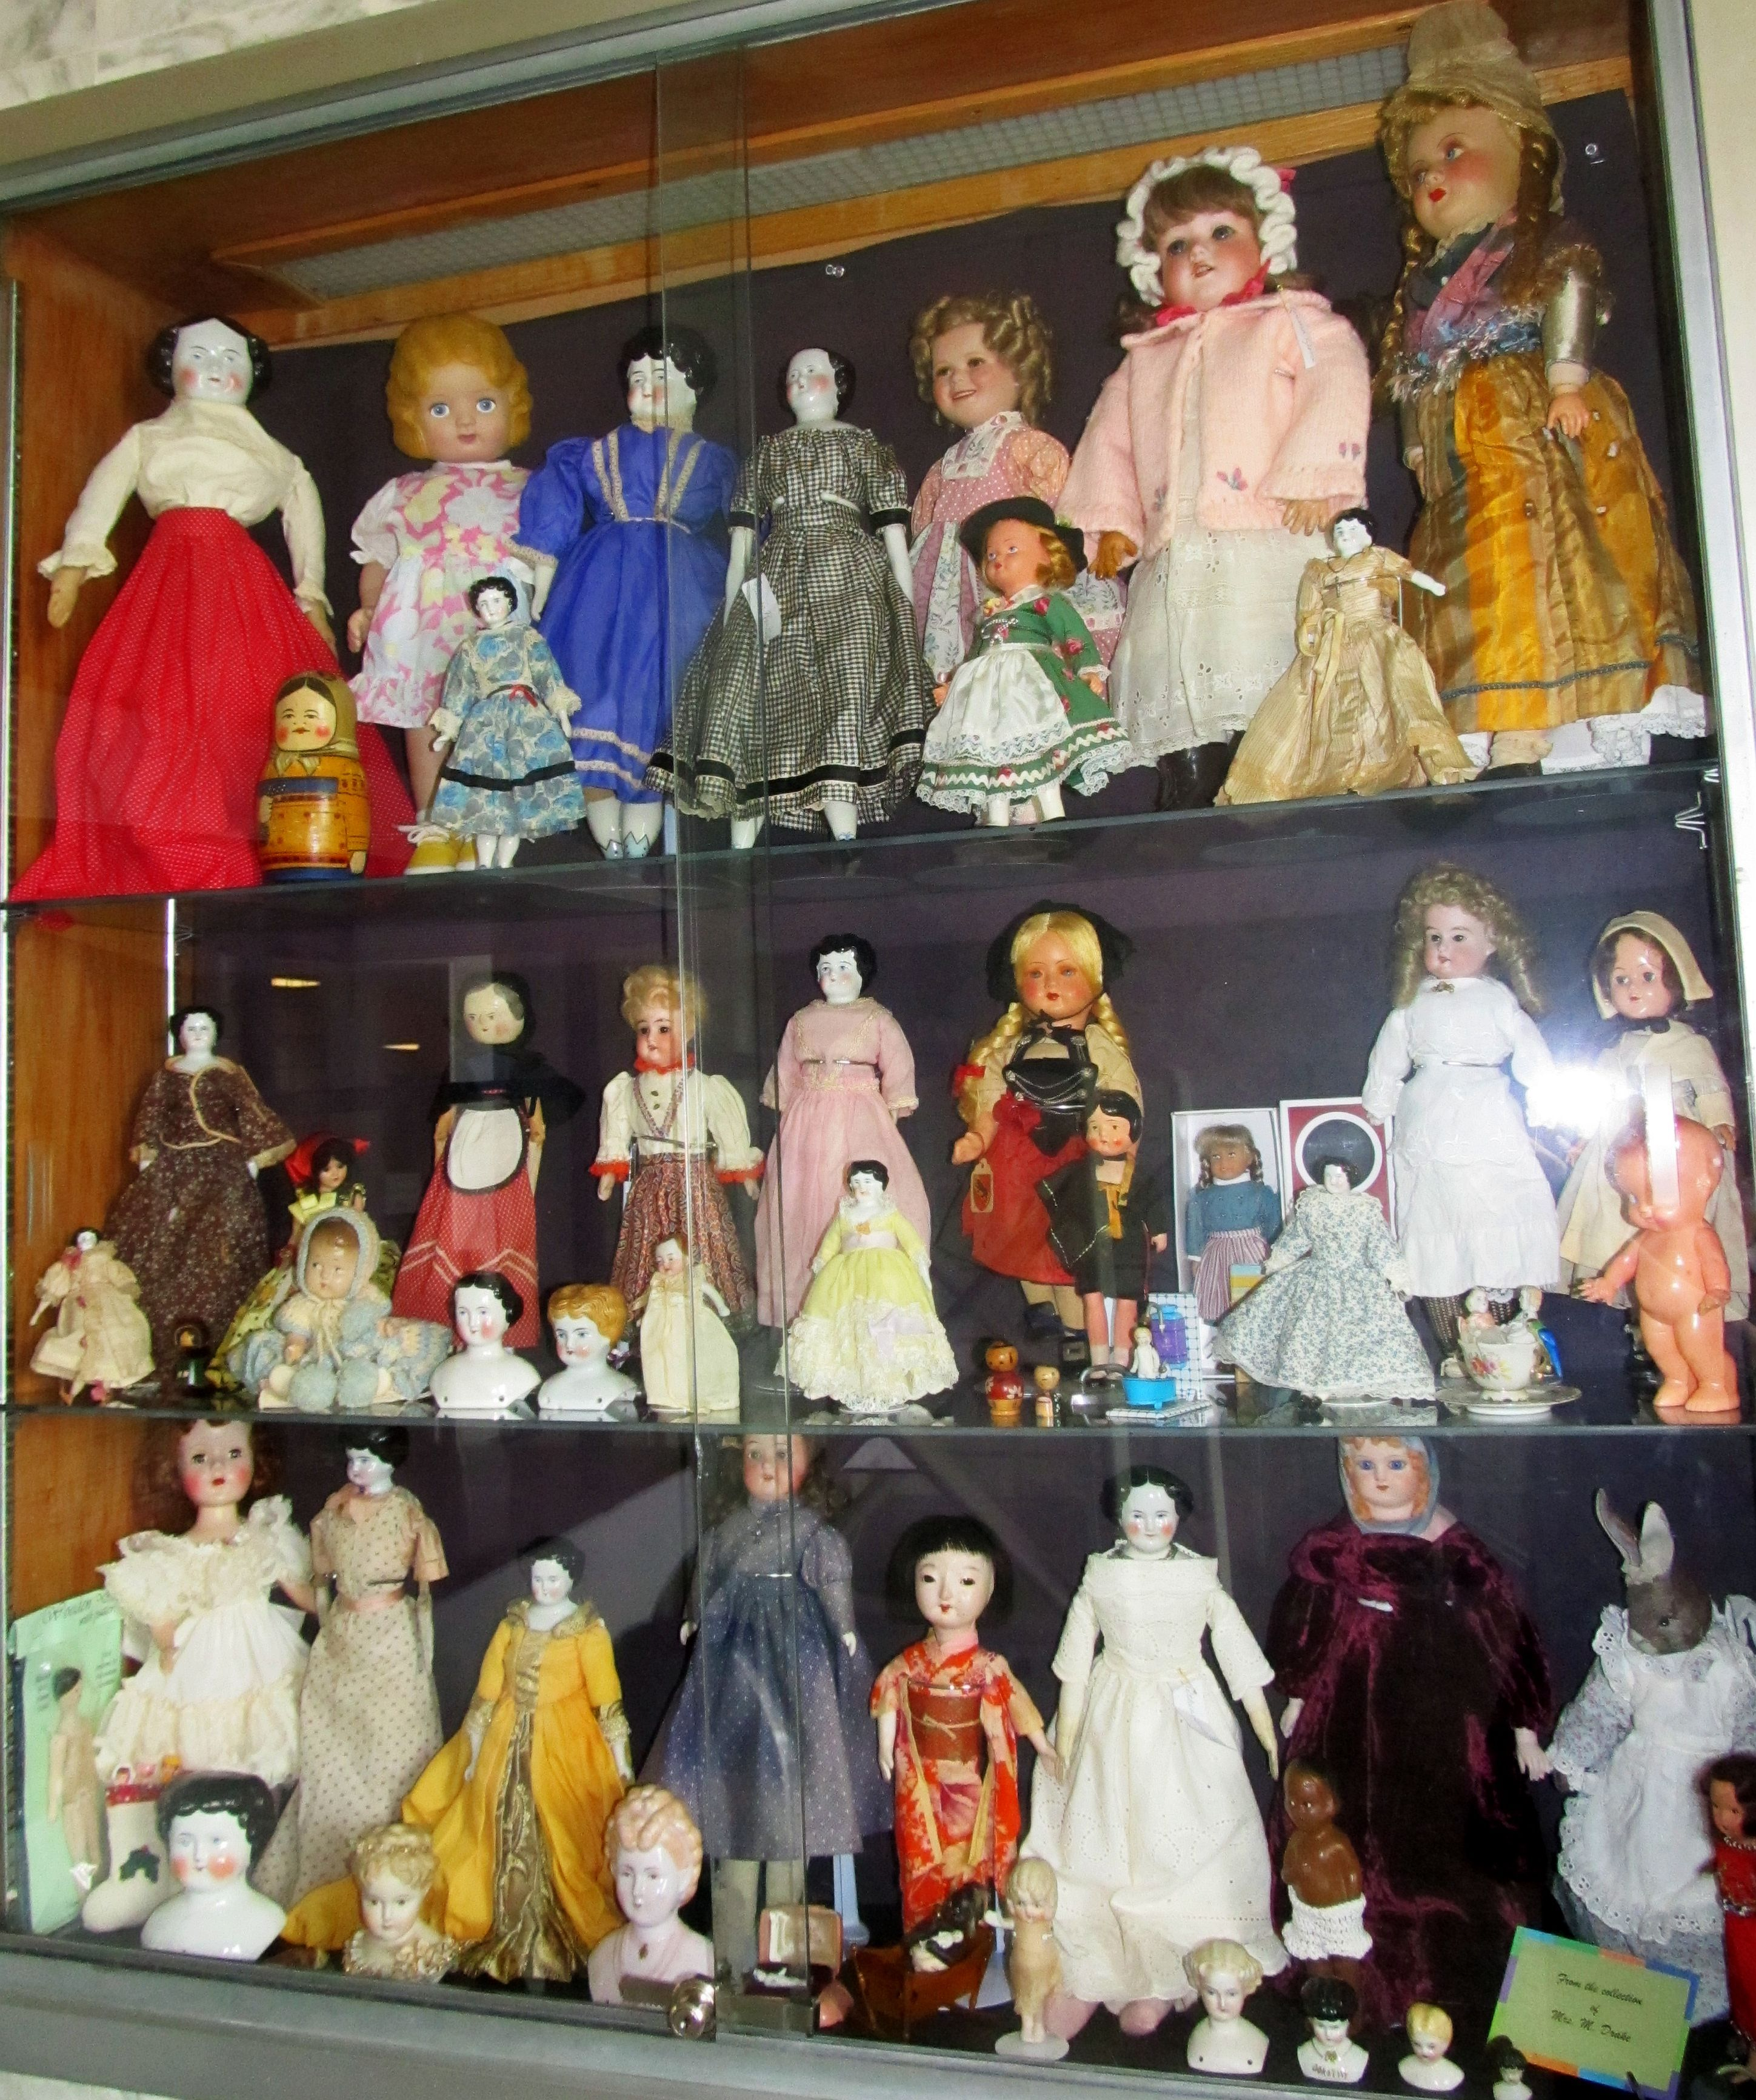 Antique, Vintage and Collectible Dolls from my collection...May 2013 Library Exhibit